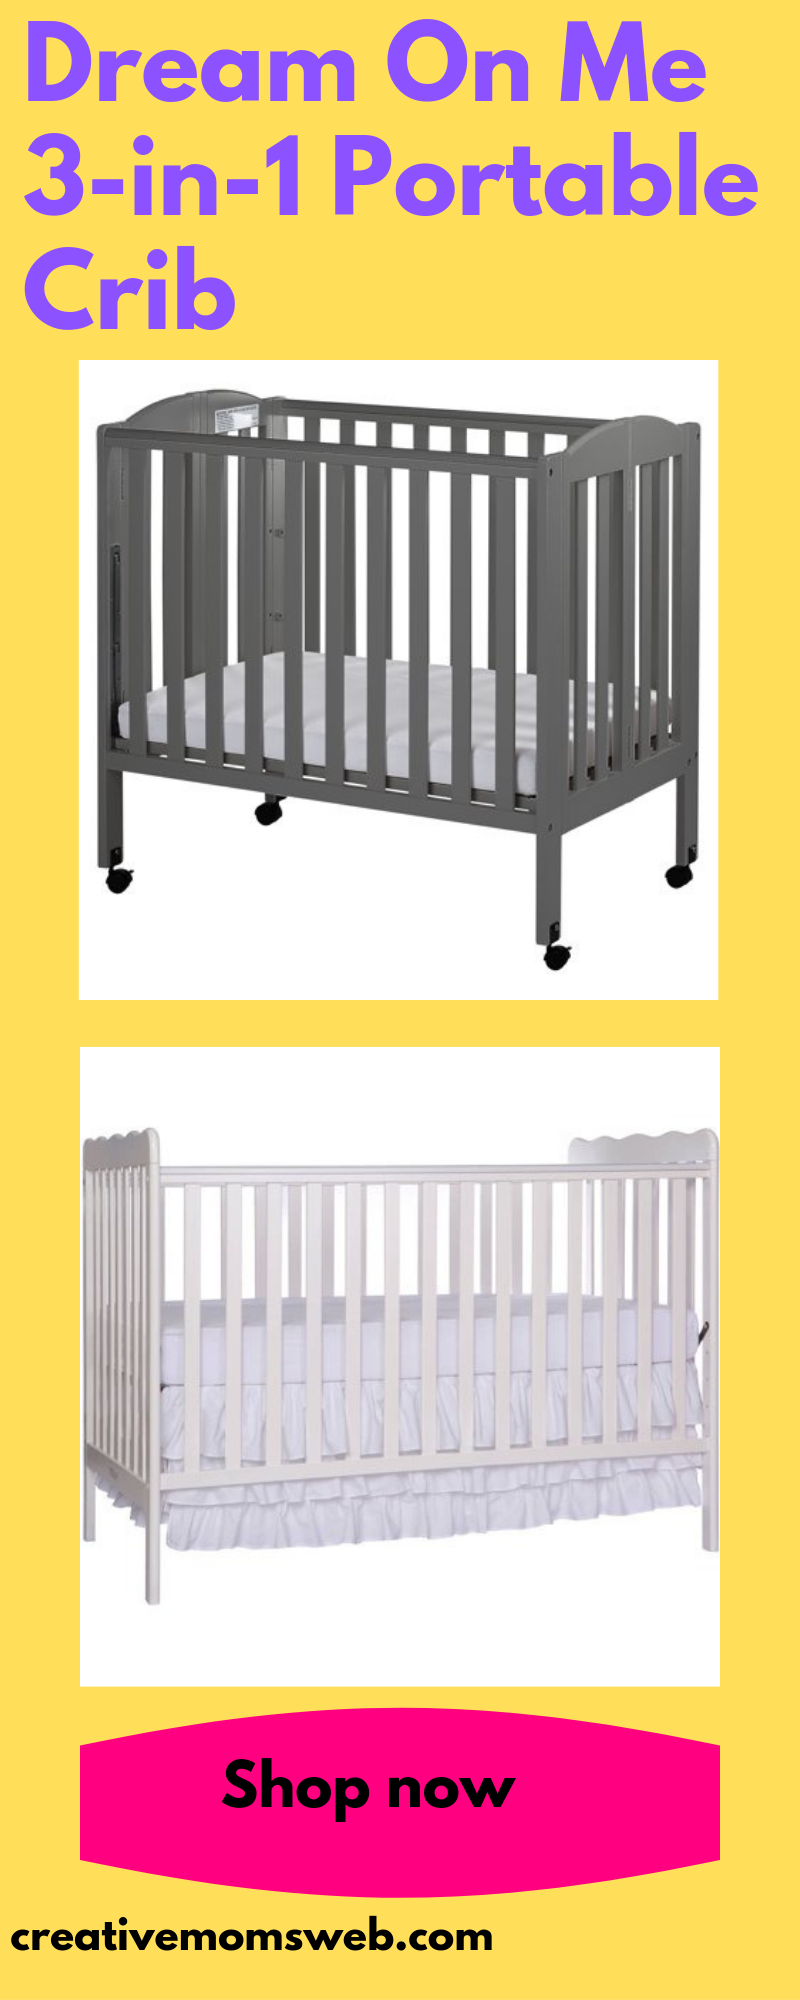 Dream On Me 3 In 1 Portable Crib Portable Crib Cribs Small Space Baby